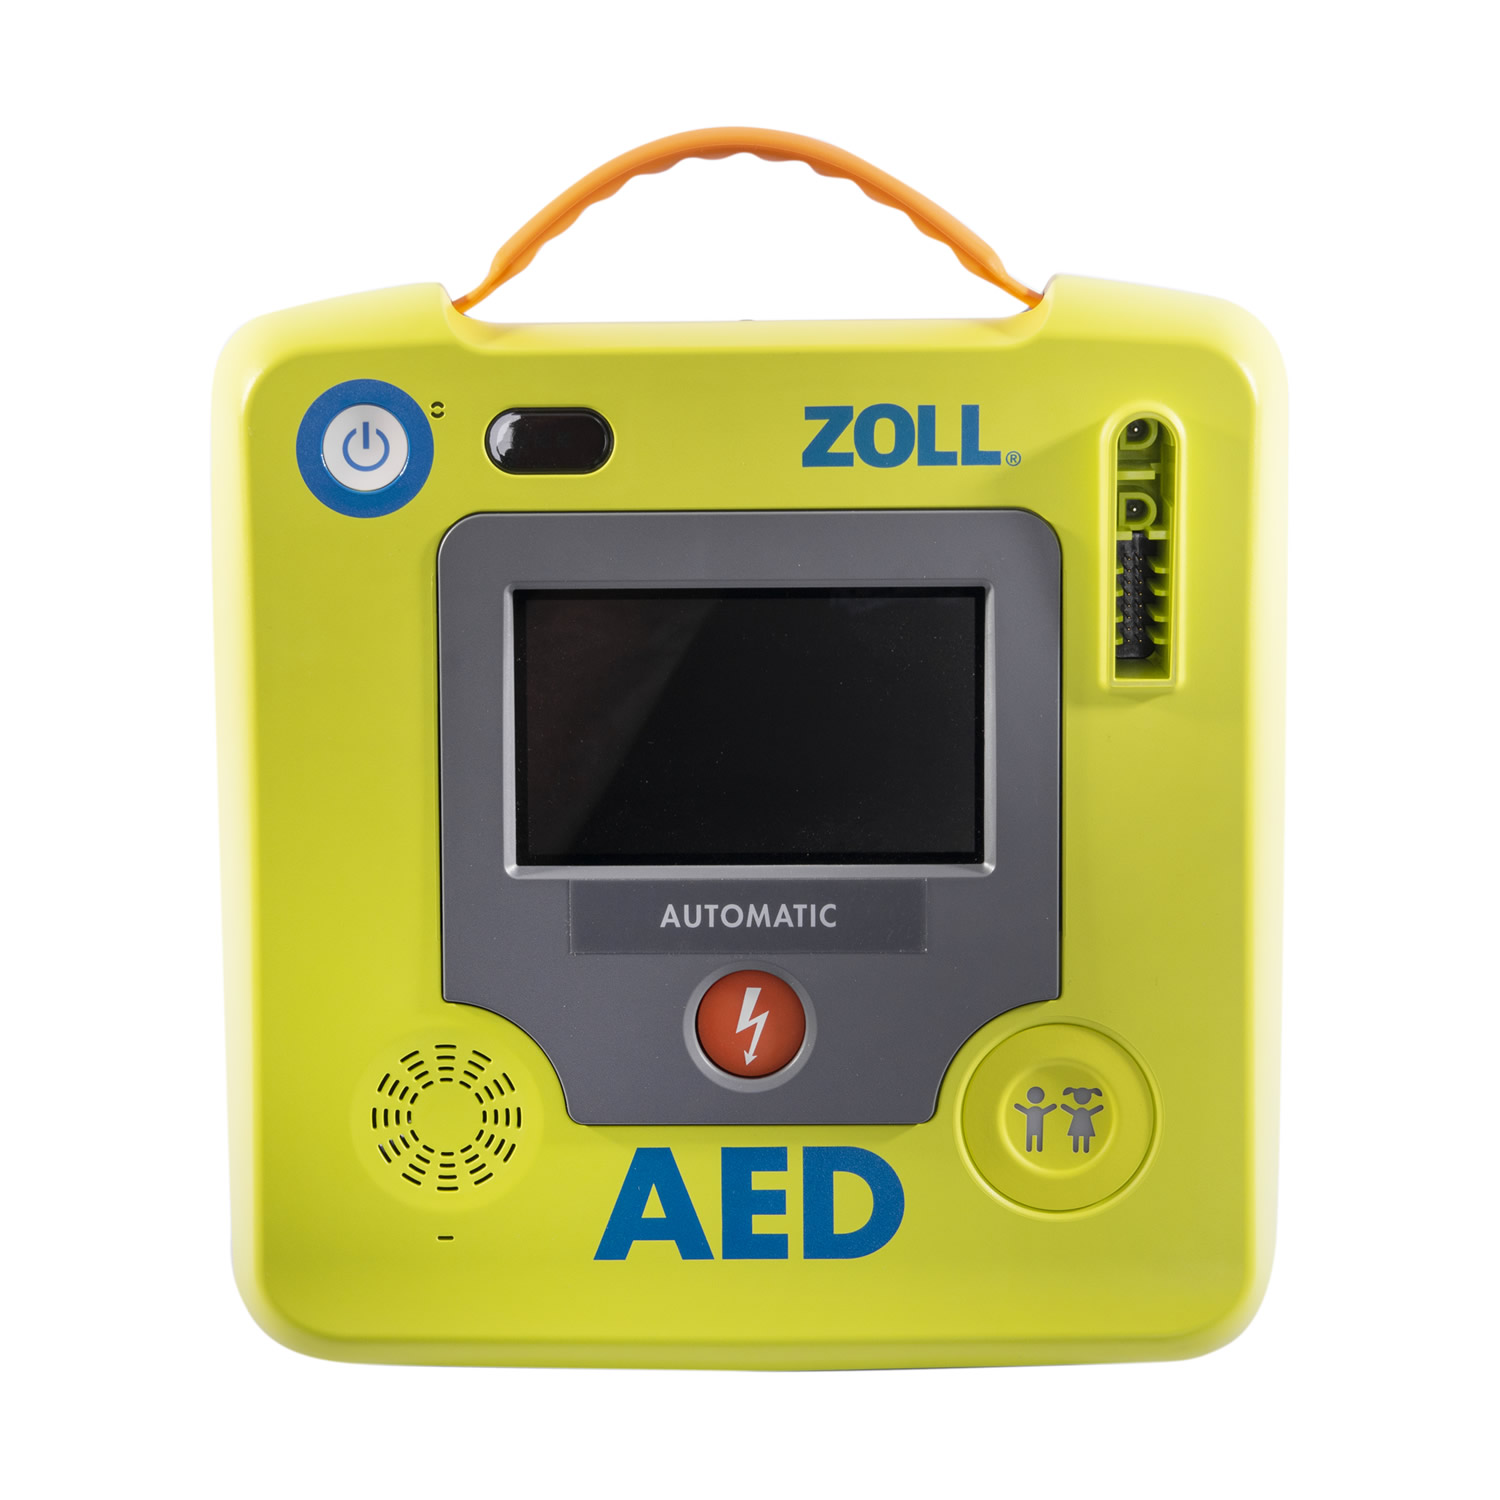 Zoll AED 3 Defibrillator Unit - Fully Automatic